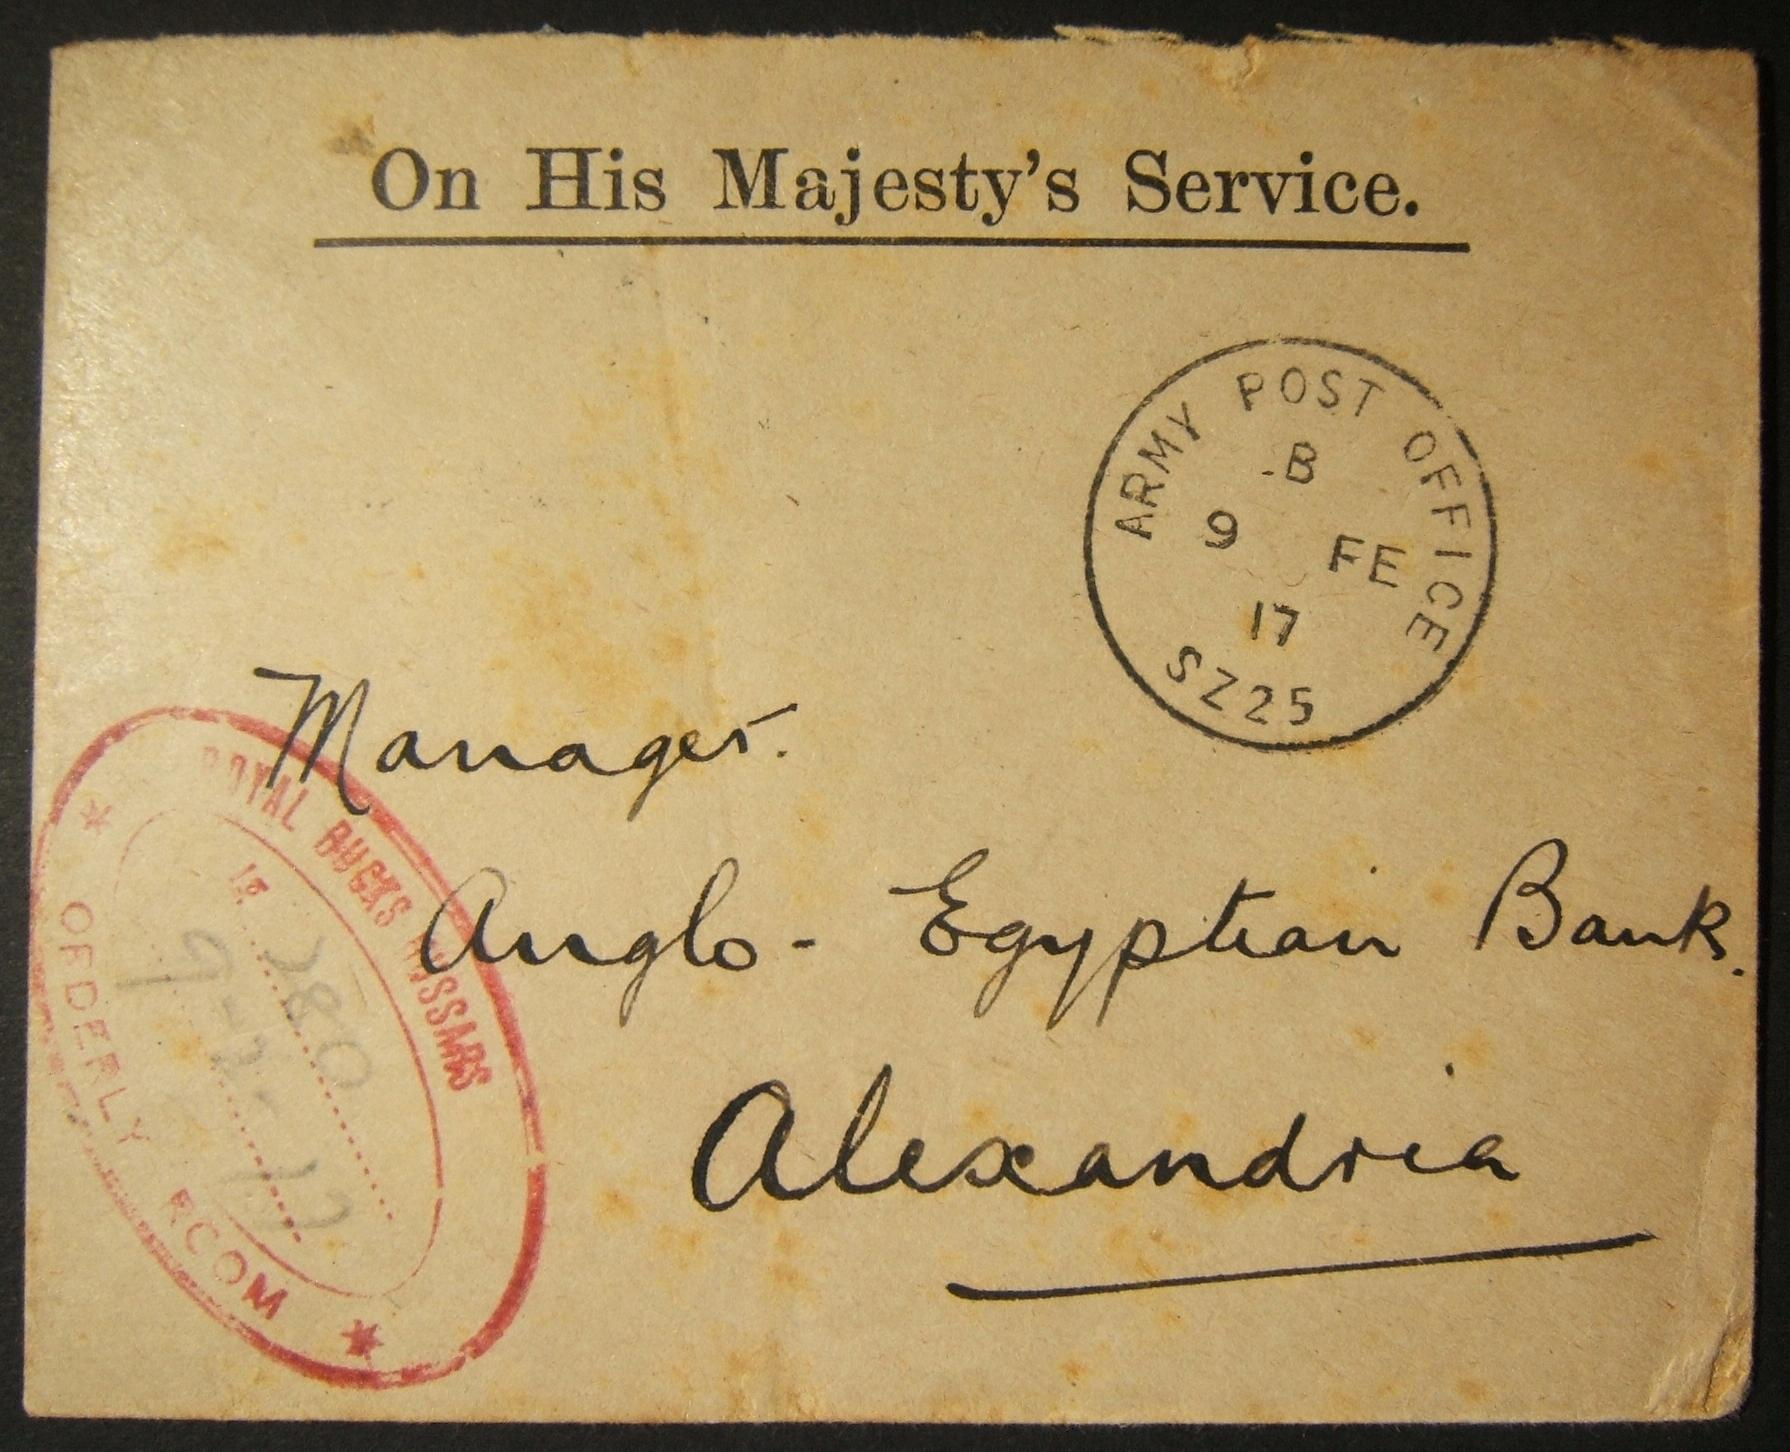 British WWI military mail in Egypt: 9 FE 1917 stampless OHMS stationary cv. ex APO SZ 25 (SUEZ CANAL) to APB ALEXANDRIA, tied by full strike of Proud-D1 State1 pmk over a month aft